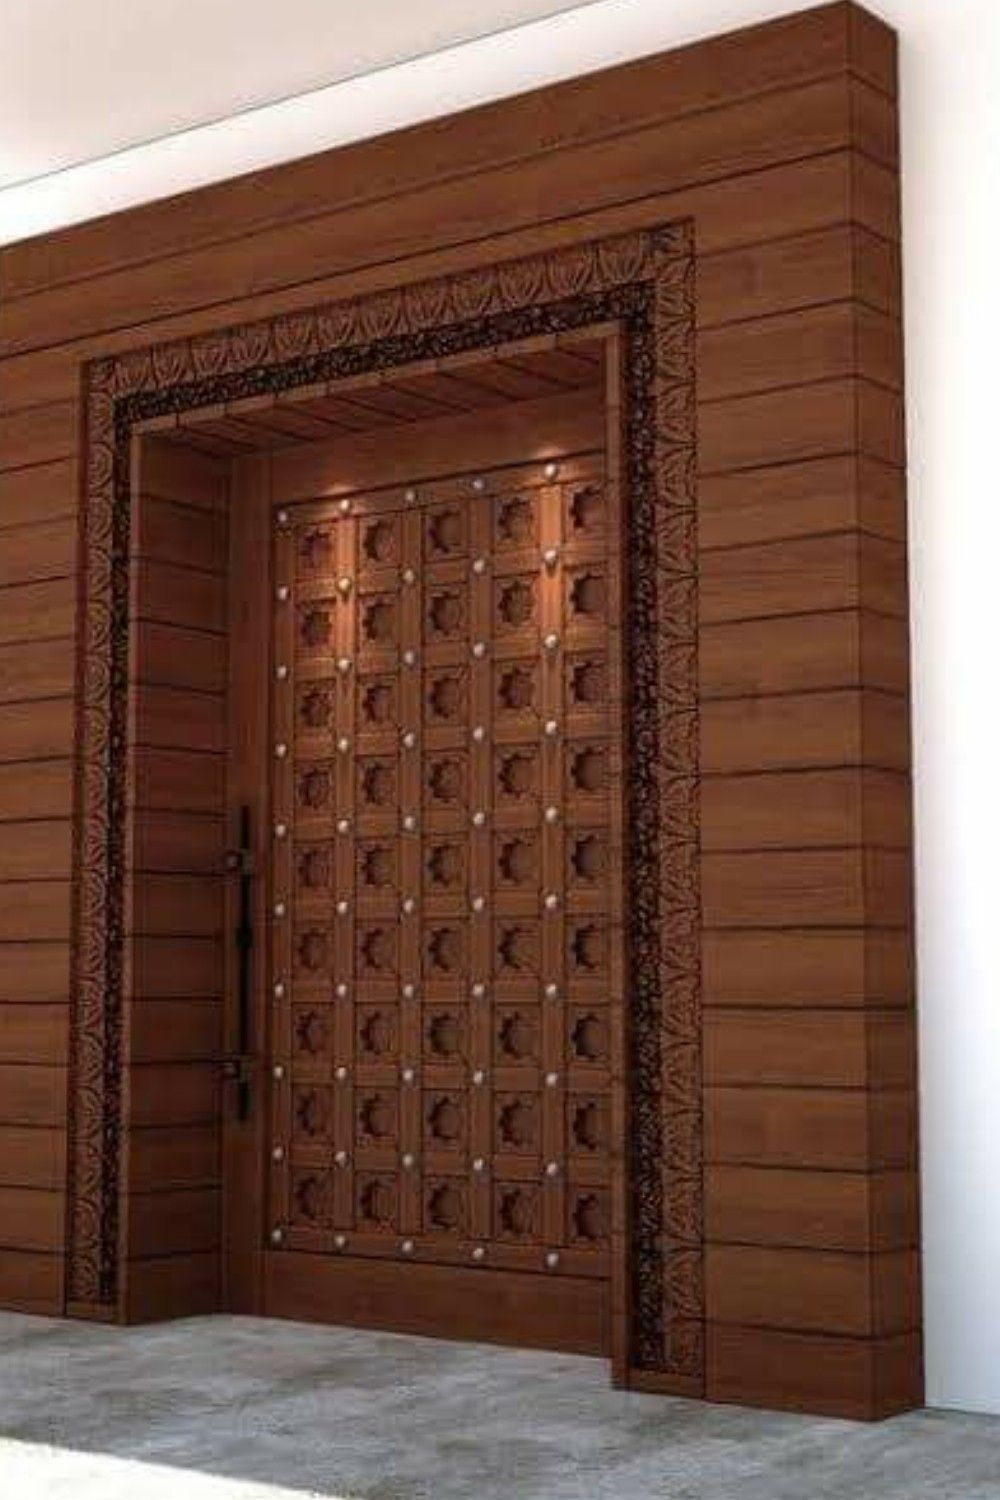 Beautiful Wooden Exterior Solid Doors, Access the largest Database of Woodworking tools and techniques, click on the page to get instant access and watch the video for more information in the link. #woodendoors #woodenfrontdoors #solidwooddoors #woodscreendoors #exteriorwooddoors #woodenslidingdoor #internalwoodendoors #solidwoodinternaldoors #woodentrydoors #woodslidingclosetdoors #solidwoodfrontdoors #woodworkingart #artofwoodworking #woodworking #woodprojects #woodplans #woodworkingmama #woo